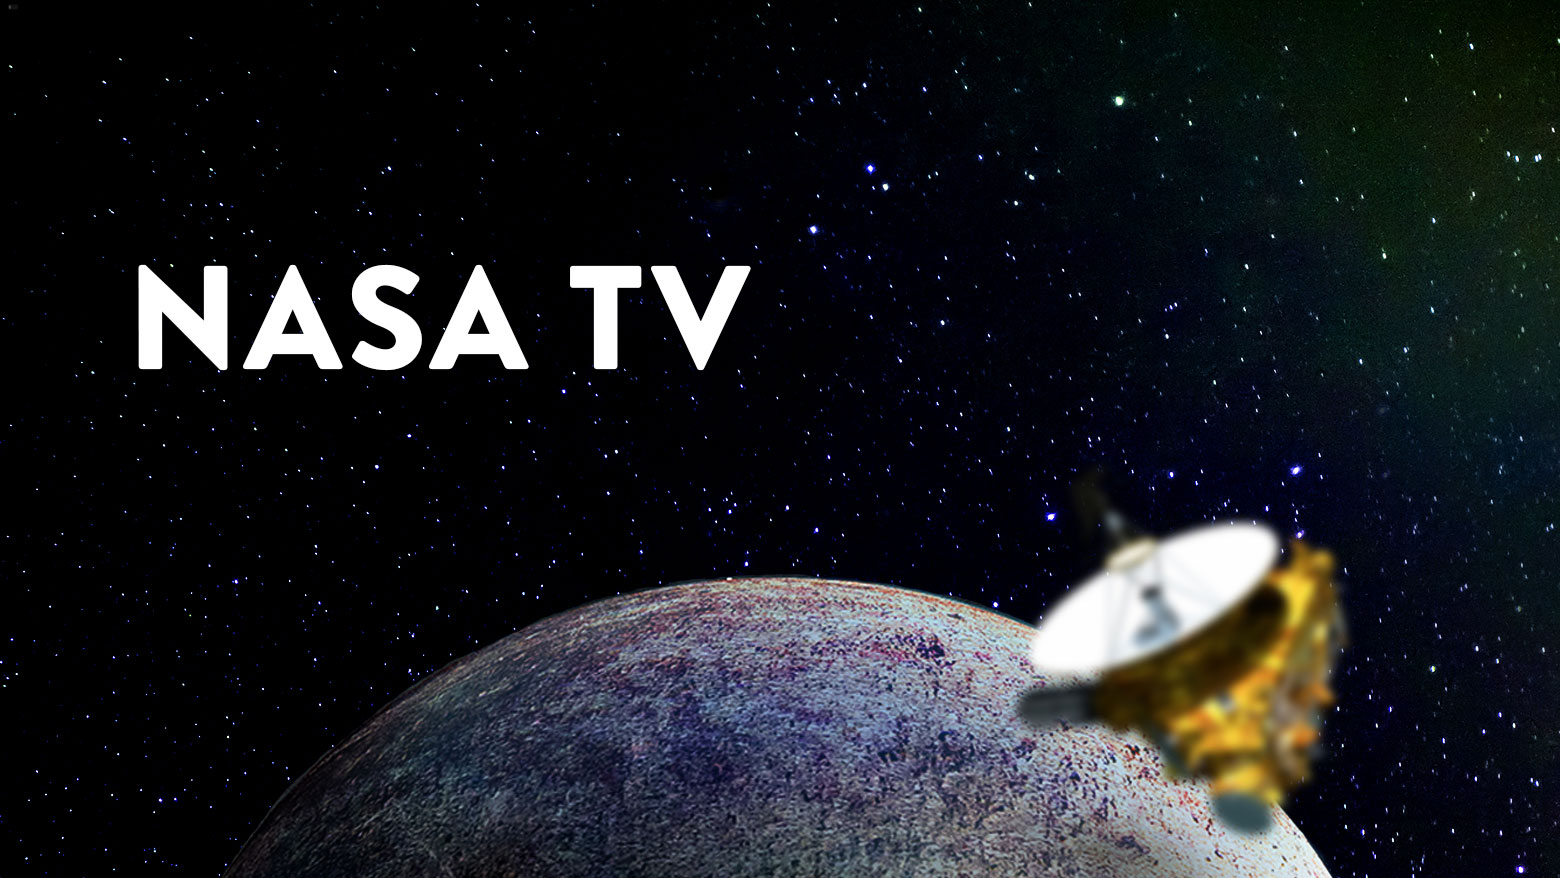 nasa tv channel line up - photo #2